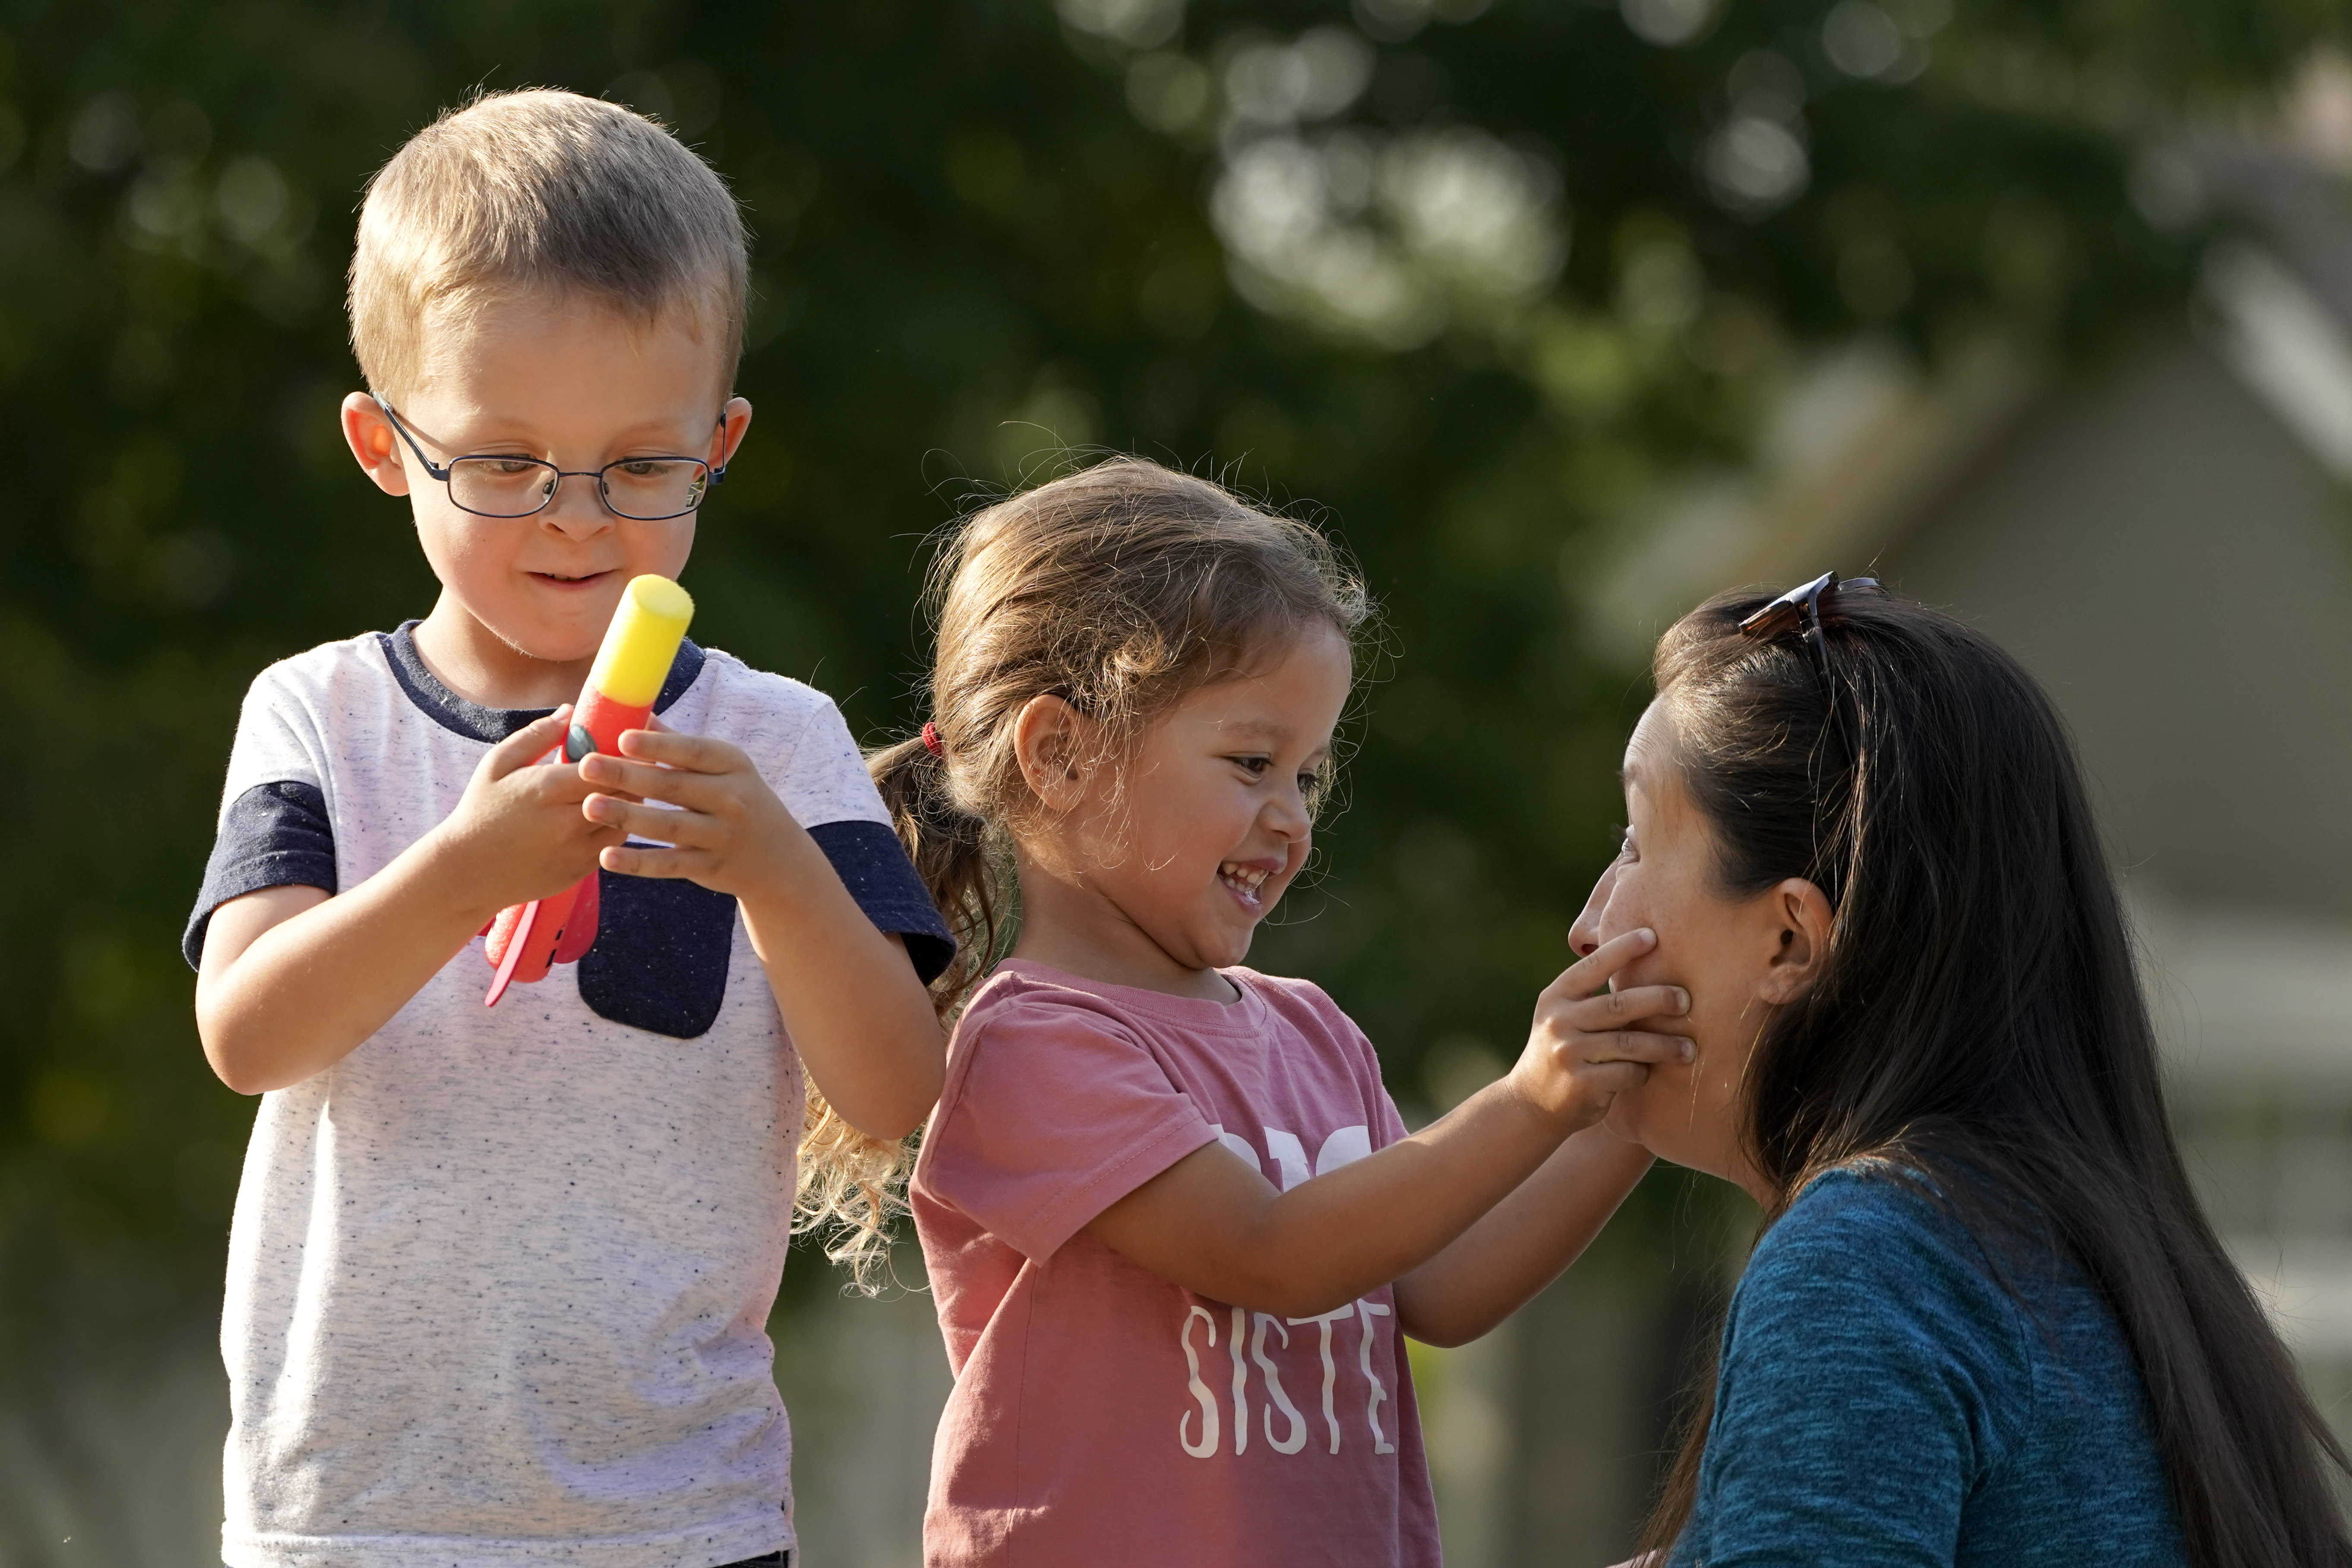 Claire Reagan plays with her kids Evan, 5, and Abbie, 3, Monday, Sept. 21, 2020, outside her home in Olathe, Kan. Reagan is keeping her son from starting kindergarten and her daughter from preschool due to concerns about the coronavirus pandemic. (AP Photo/Charlie Riedel)